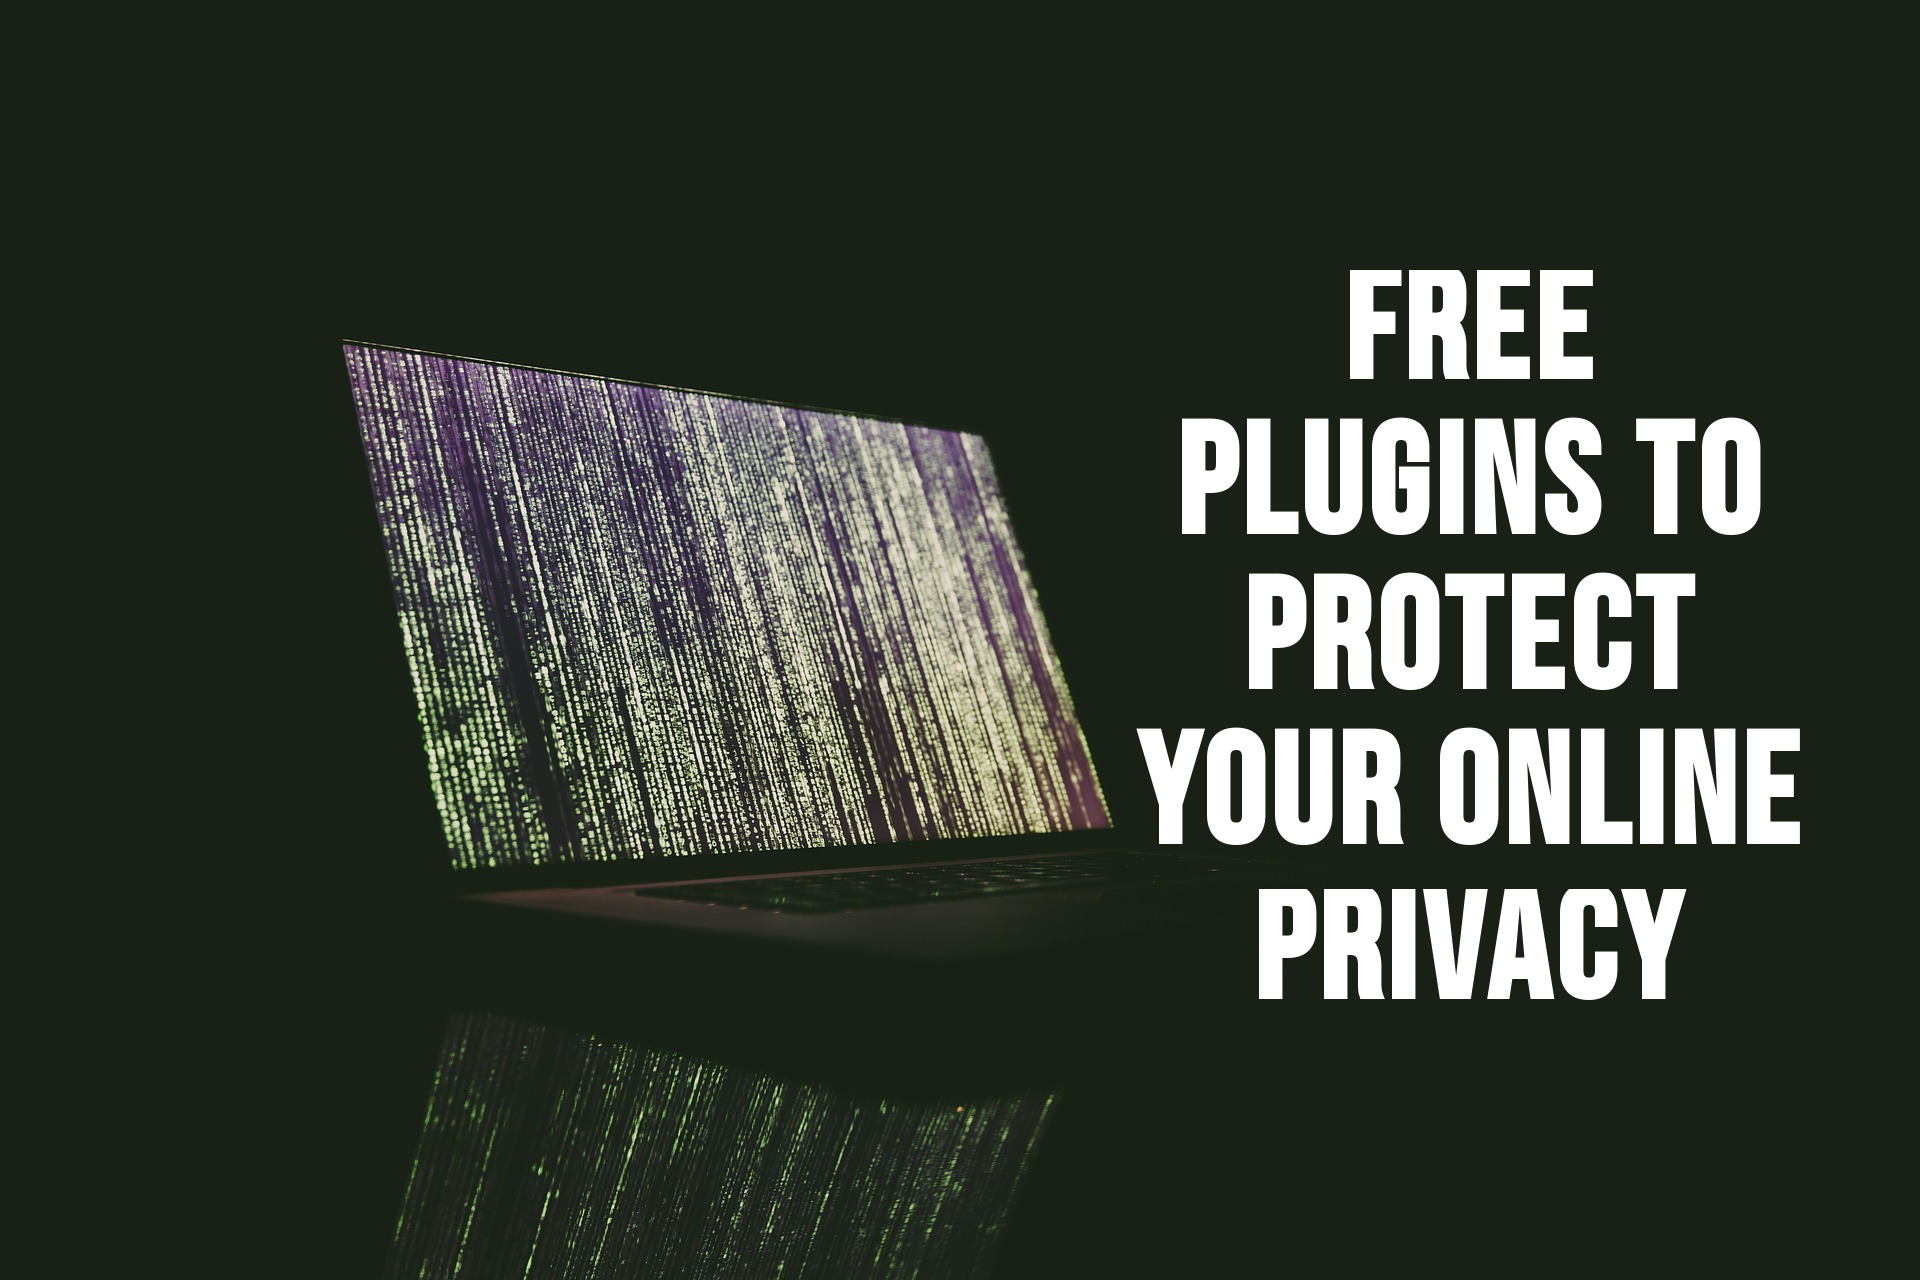 The government won't protect your internet privacy, so here's how to do it yourself